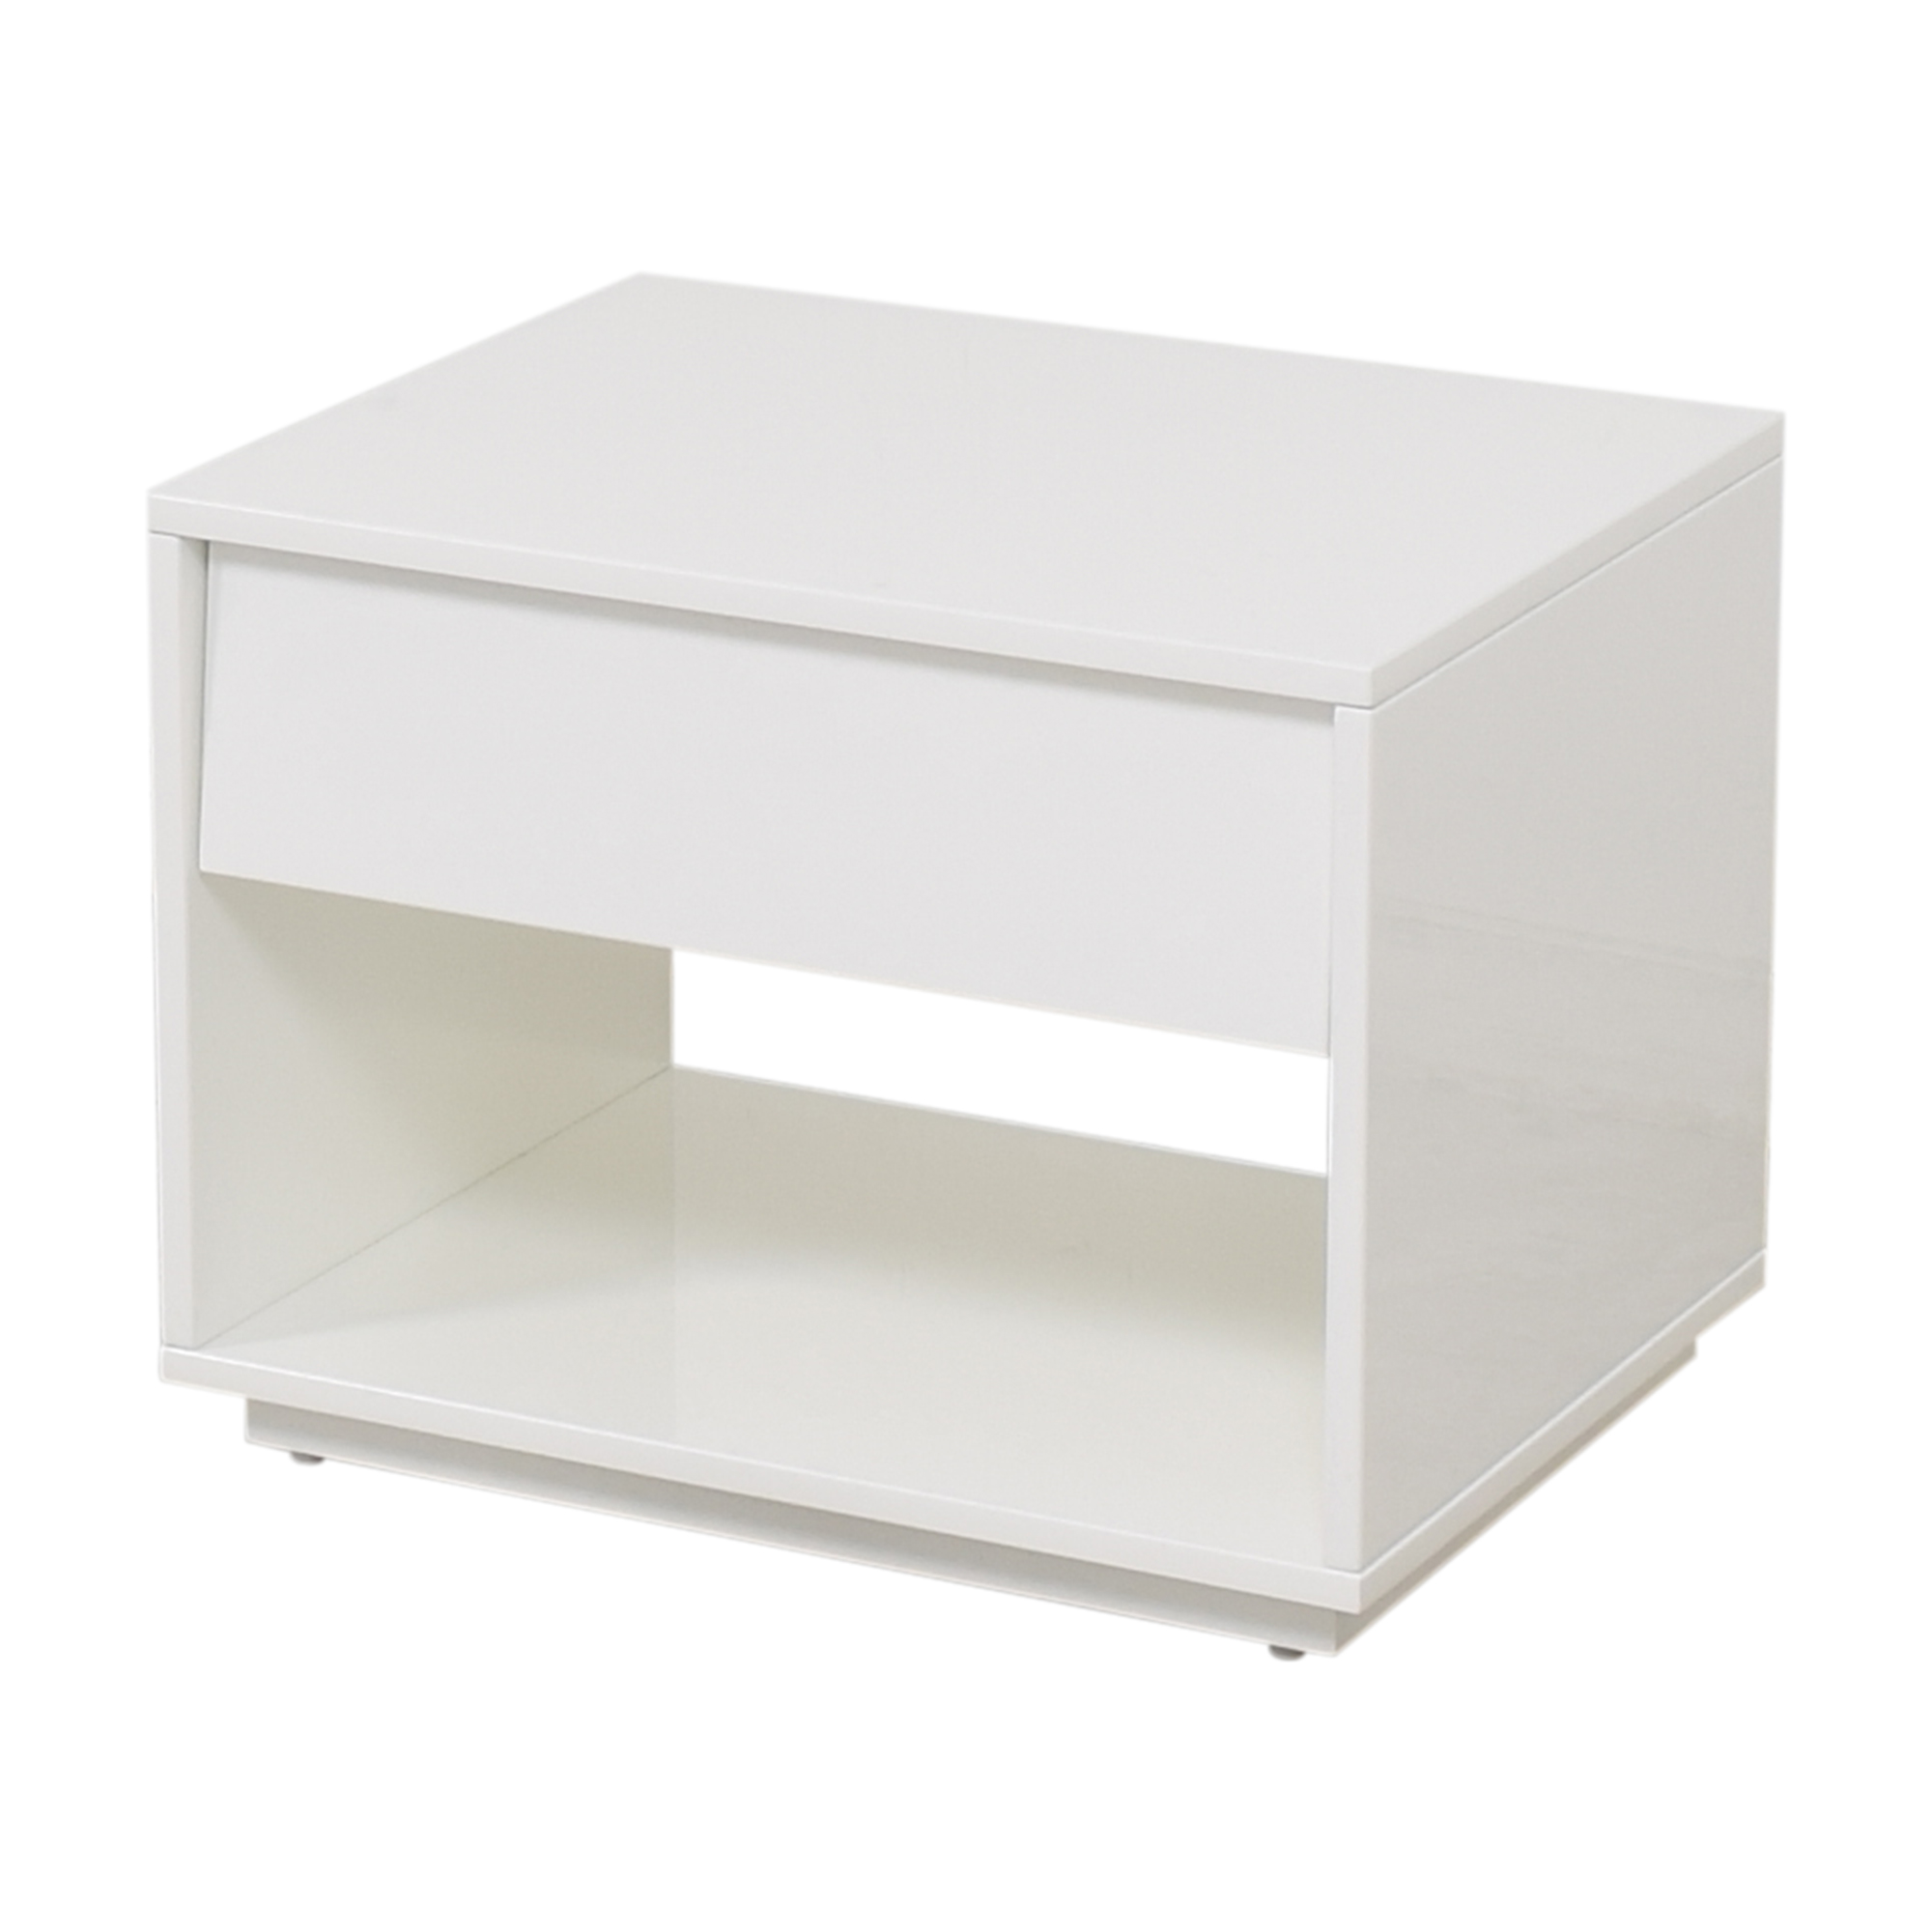 CB2 CB2 Shake One Drawer Nightstand End Tables